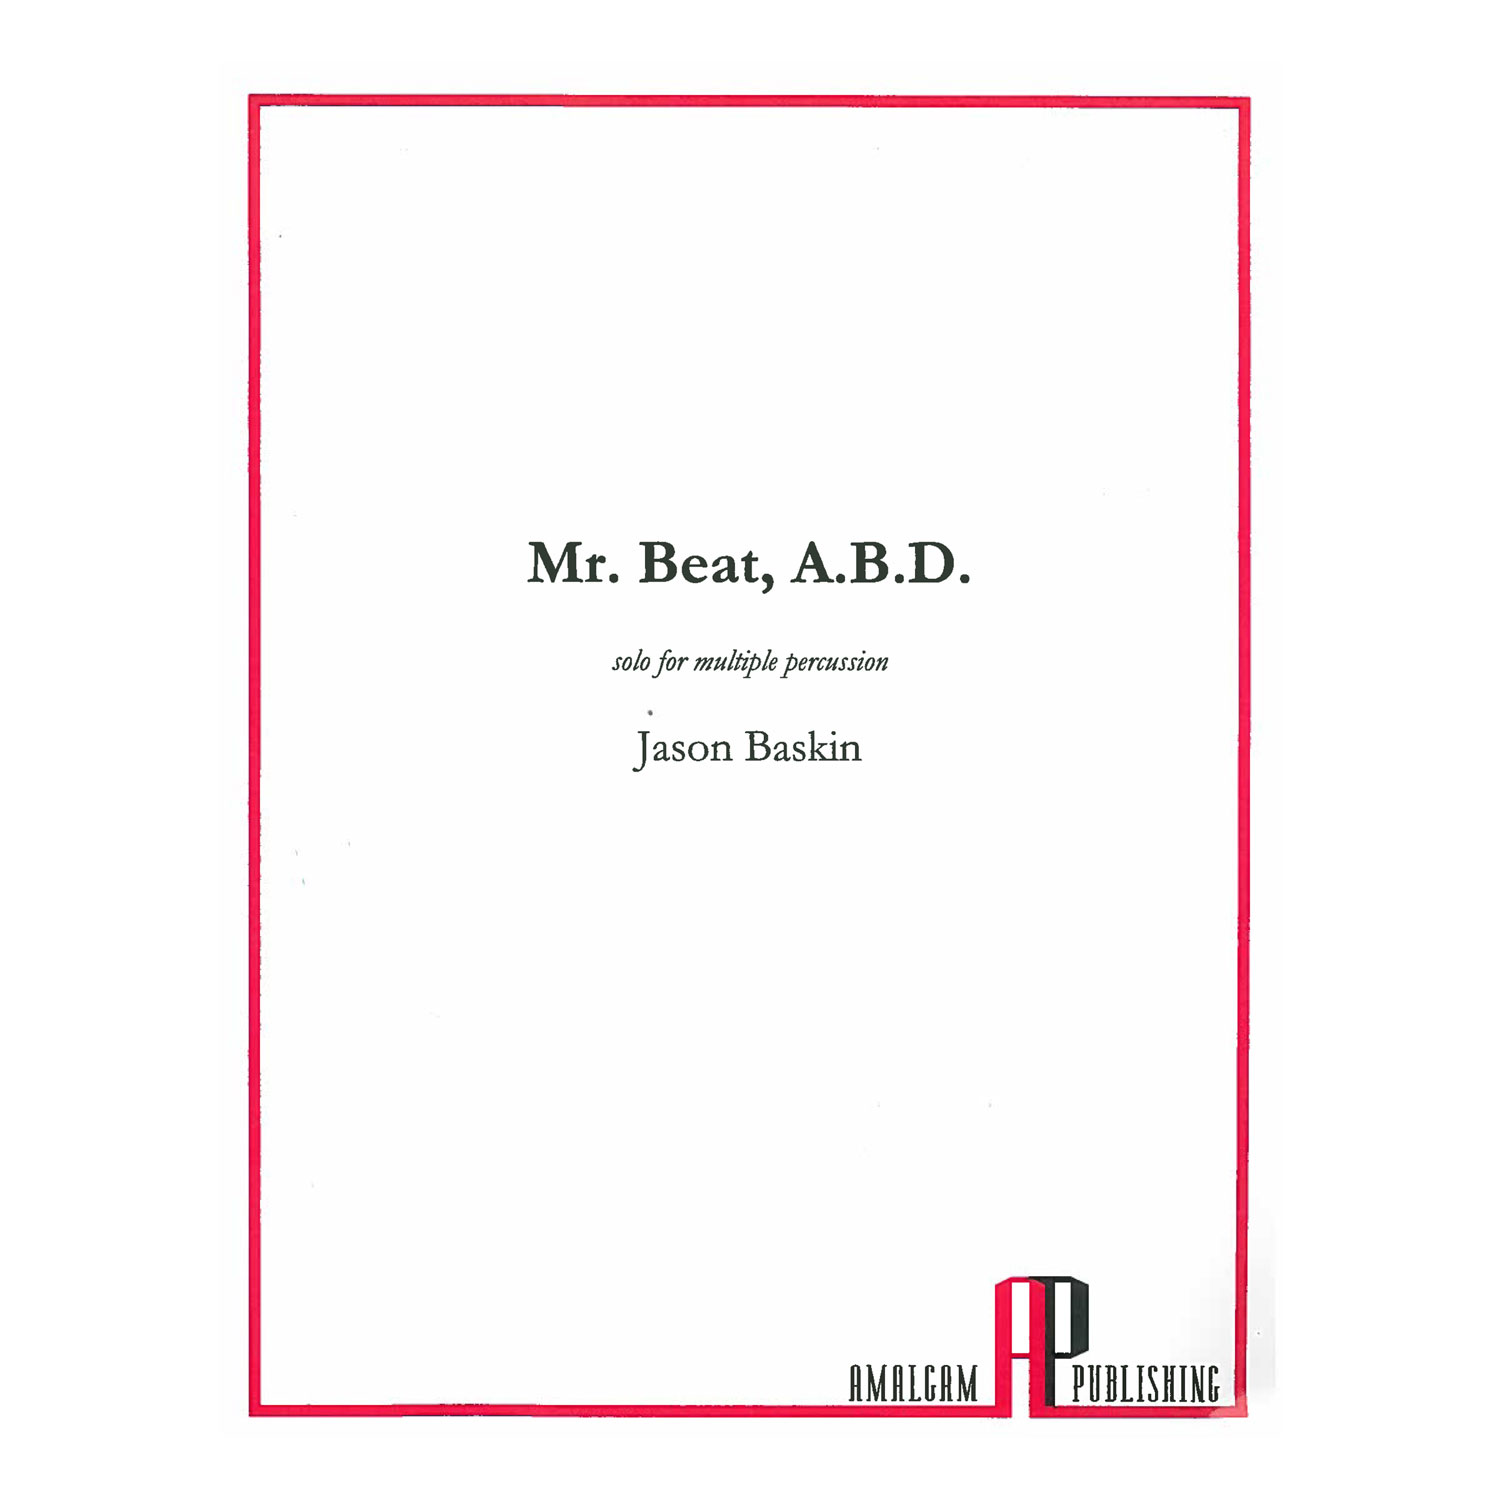 Mr. Beat, A.B.D. by Jason Baskin